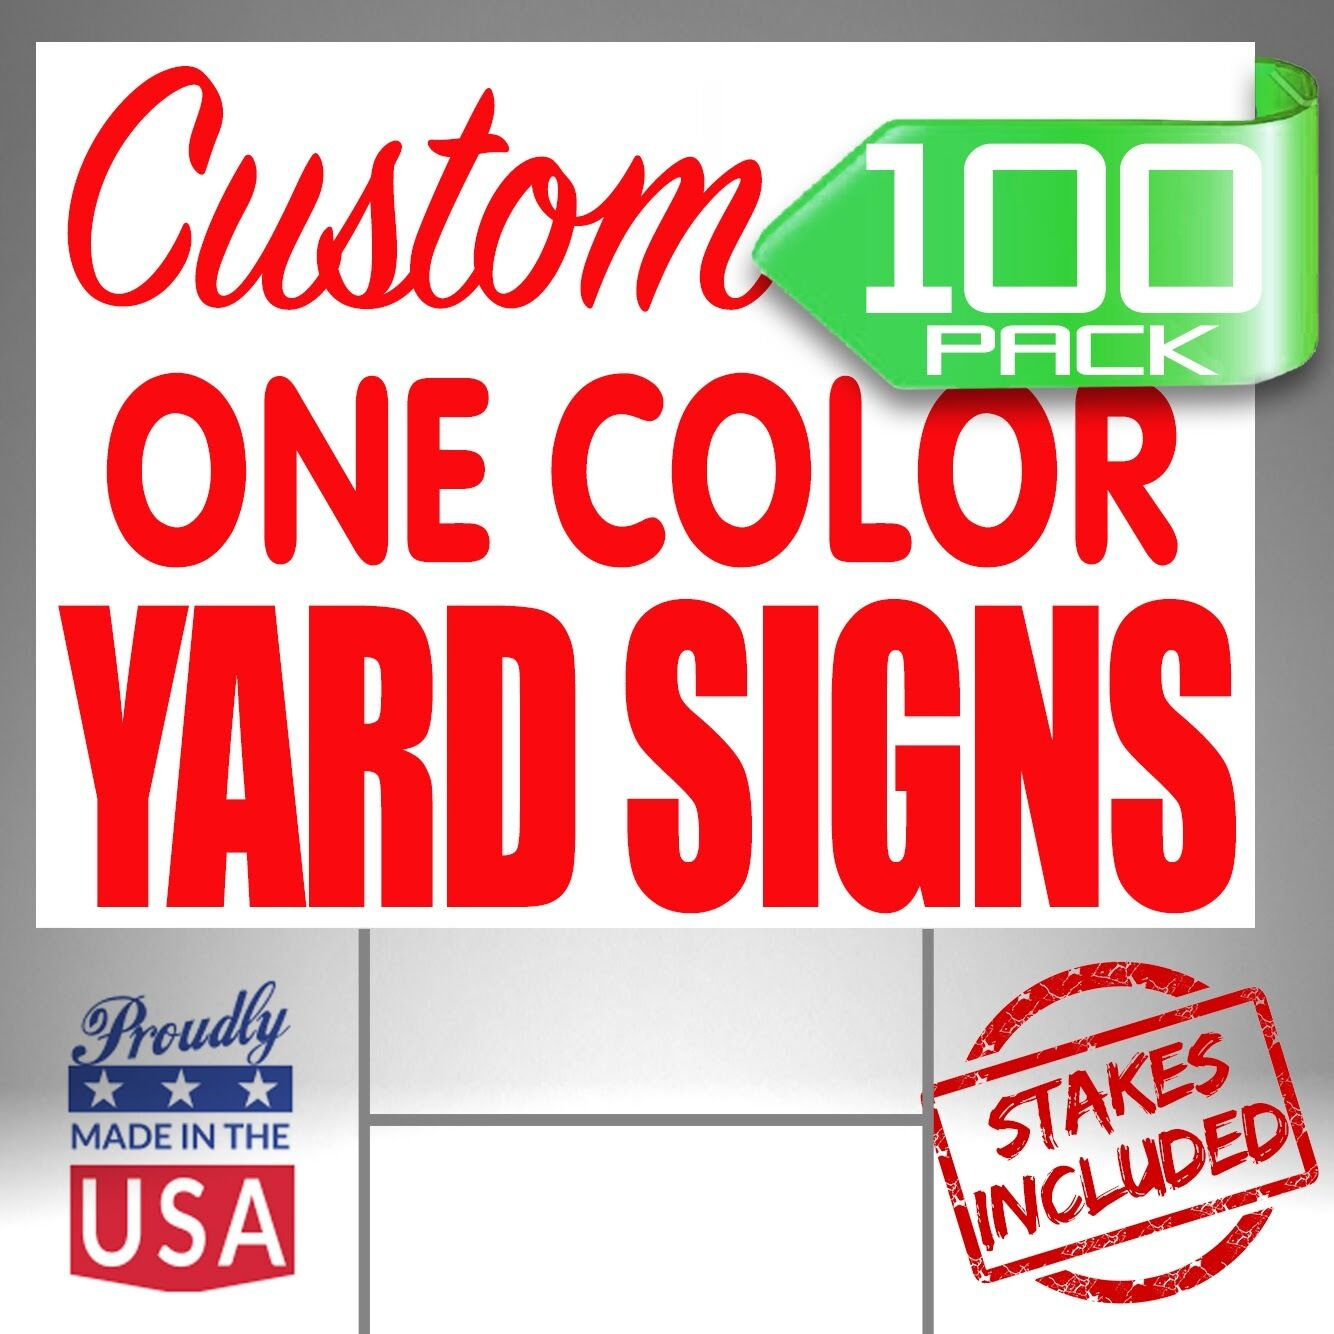 Stakes Included! Full Color Custom Design 25-18x24 Yard Signs 2 Sided